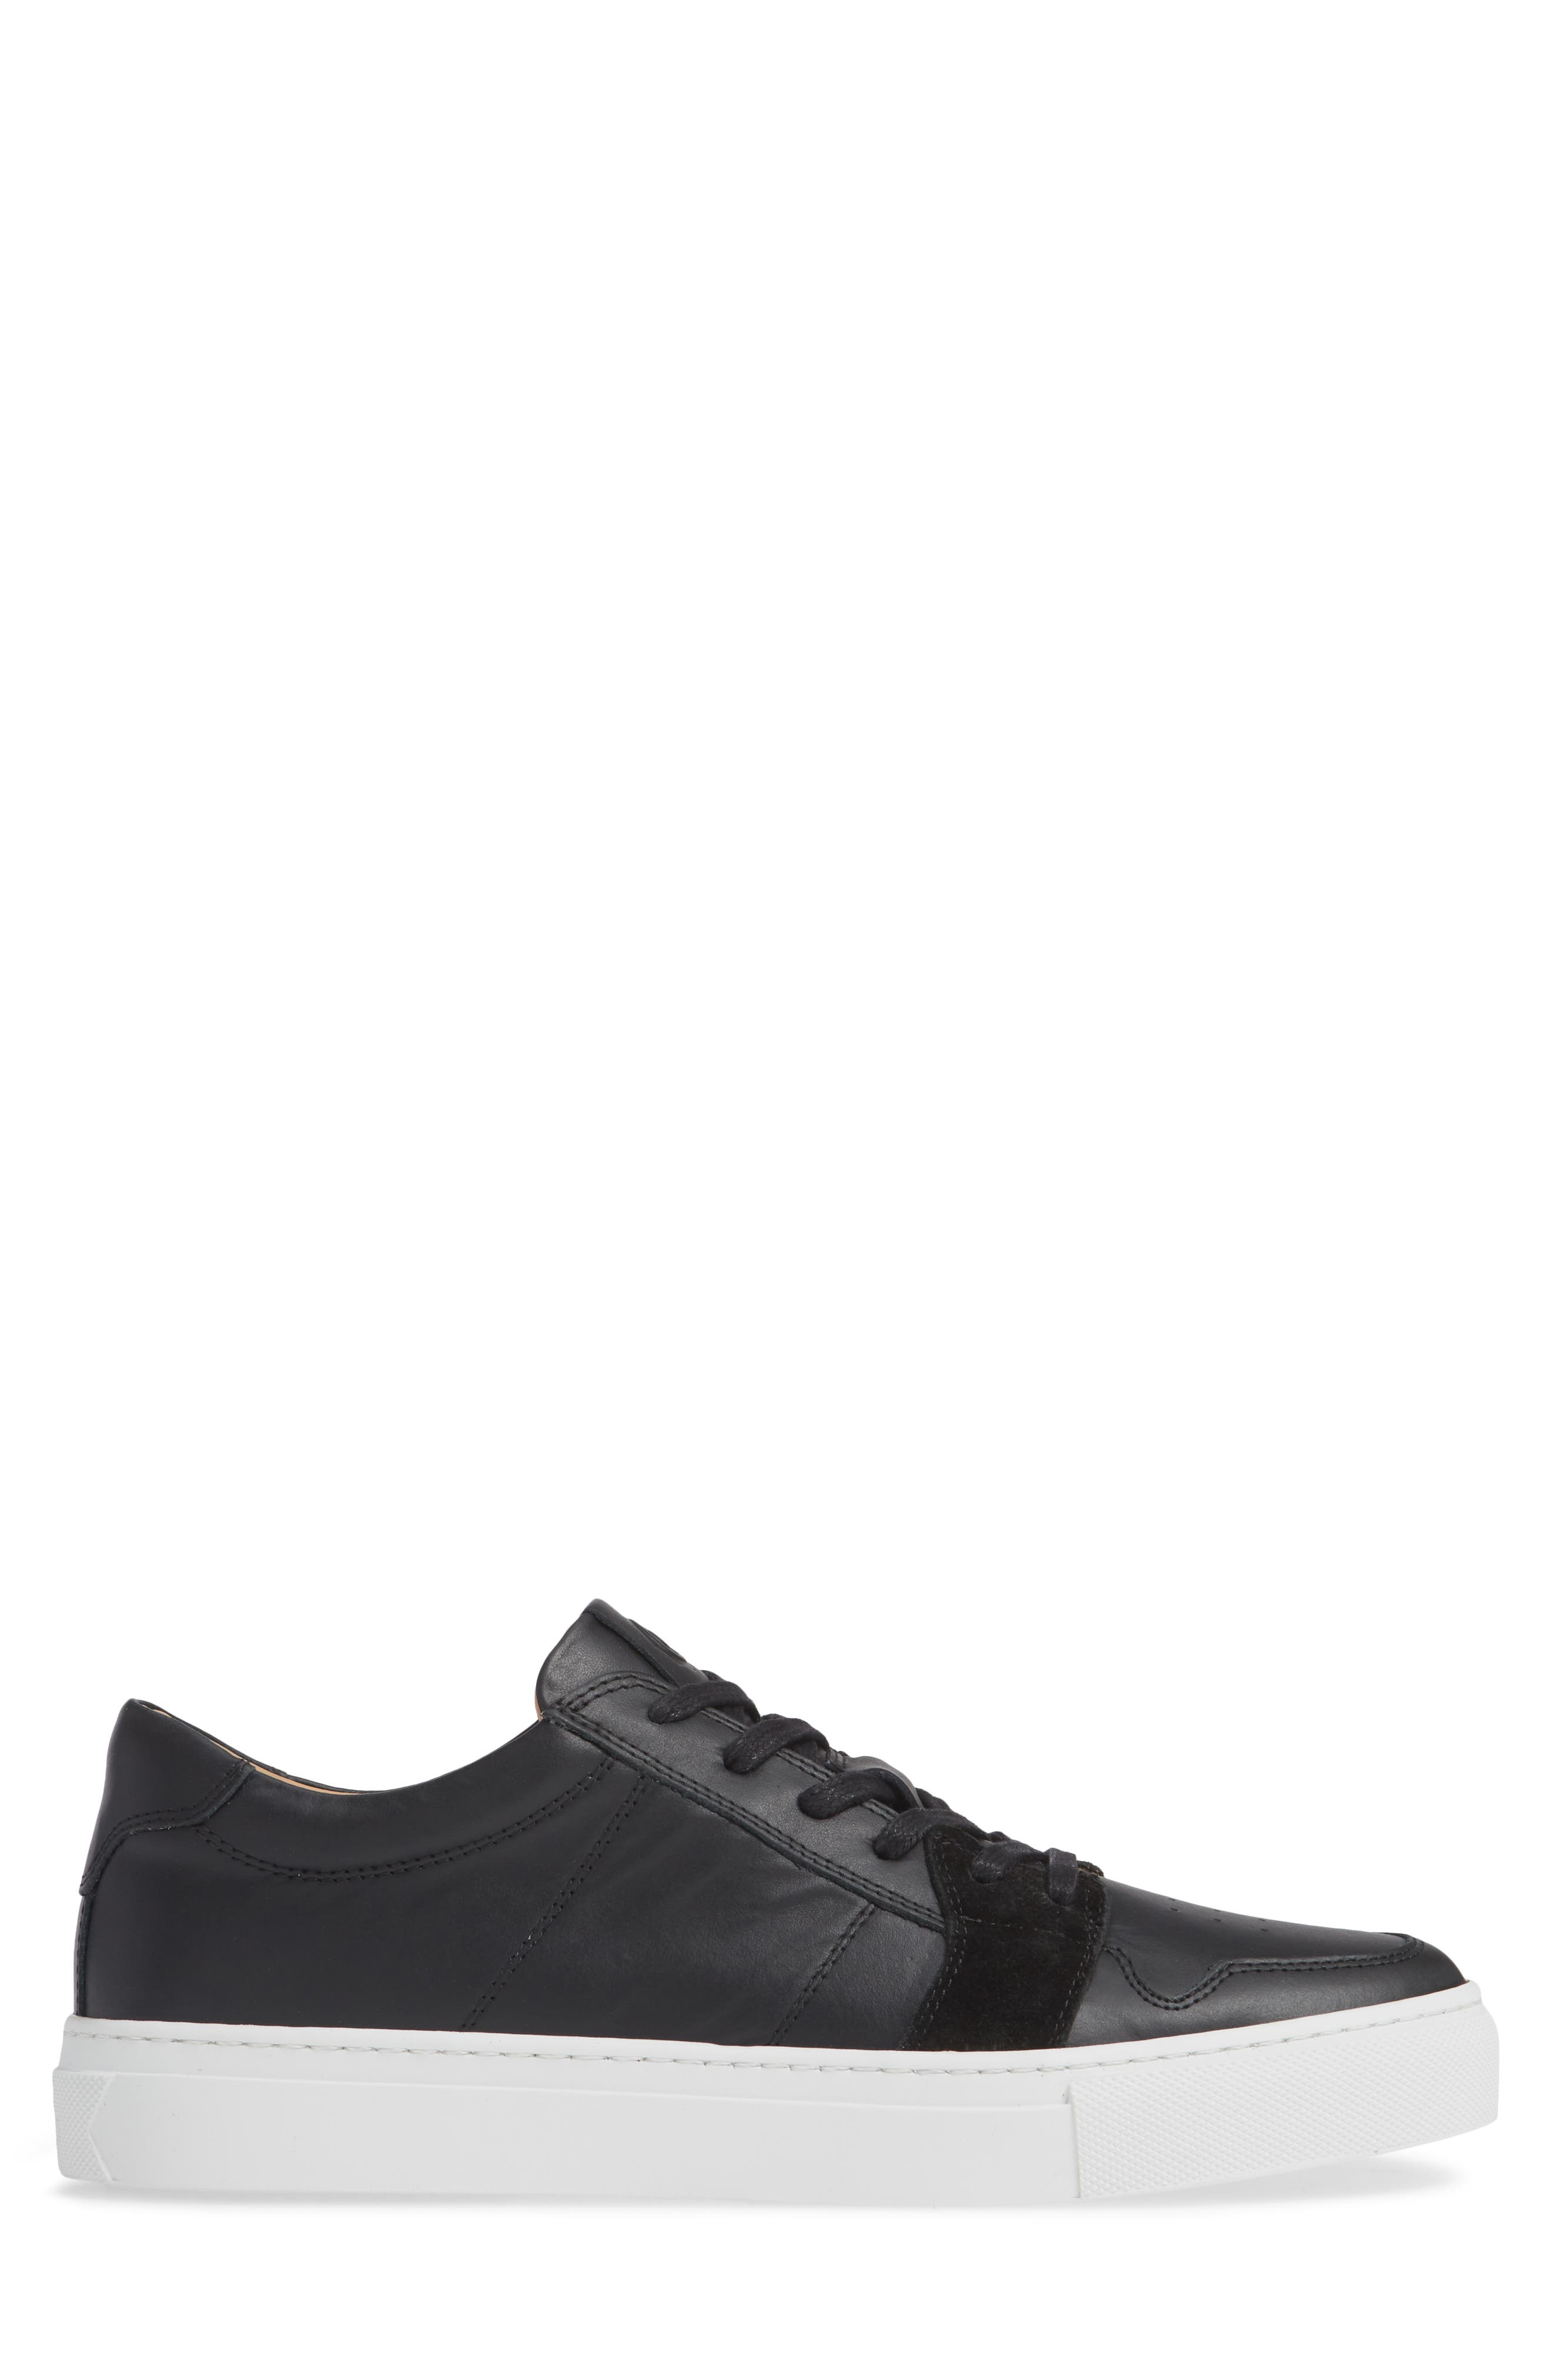 Nick Wooster x GREATS Court Low Top Sneaker,                             Alternate thumbnail 3, color,                             BLACK